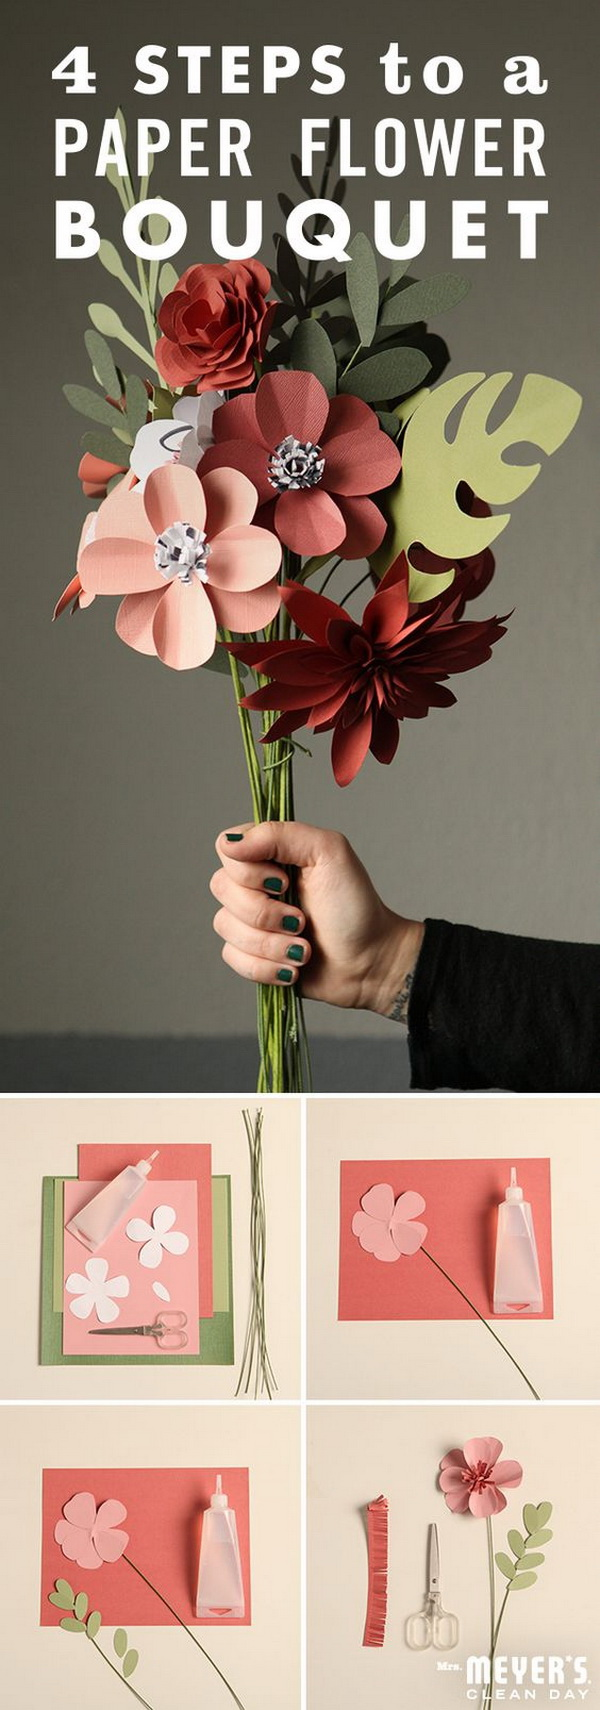 DIY Paper Flower Bouquet. Paper flowers are fun and easy to make, lovely for everyday decor or special occasions, and last as long as you'd like. Make a collection of these bright paper flowers and display them in vases as centerpieces. You can easily customize them with different color palette to suit your decor.